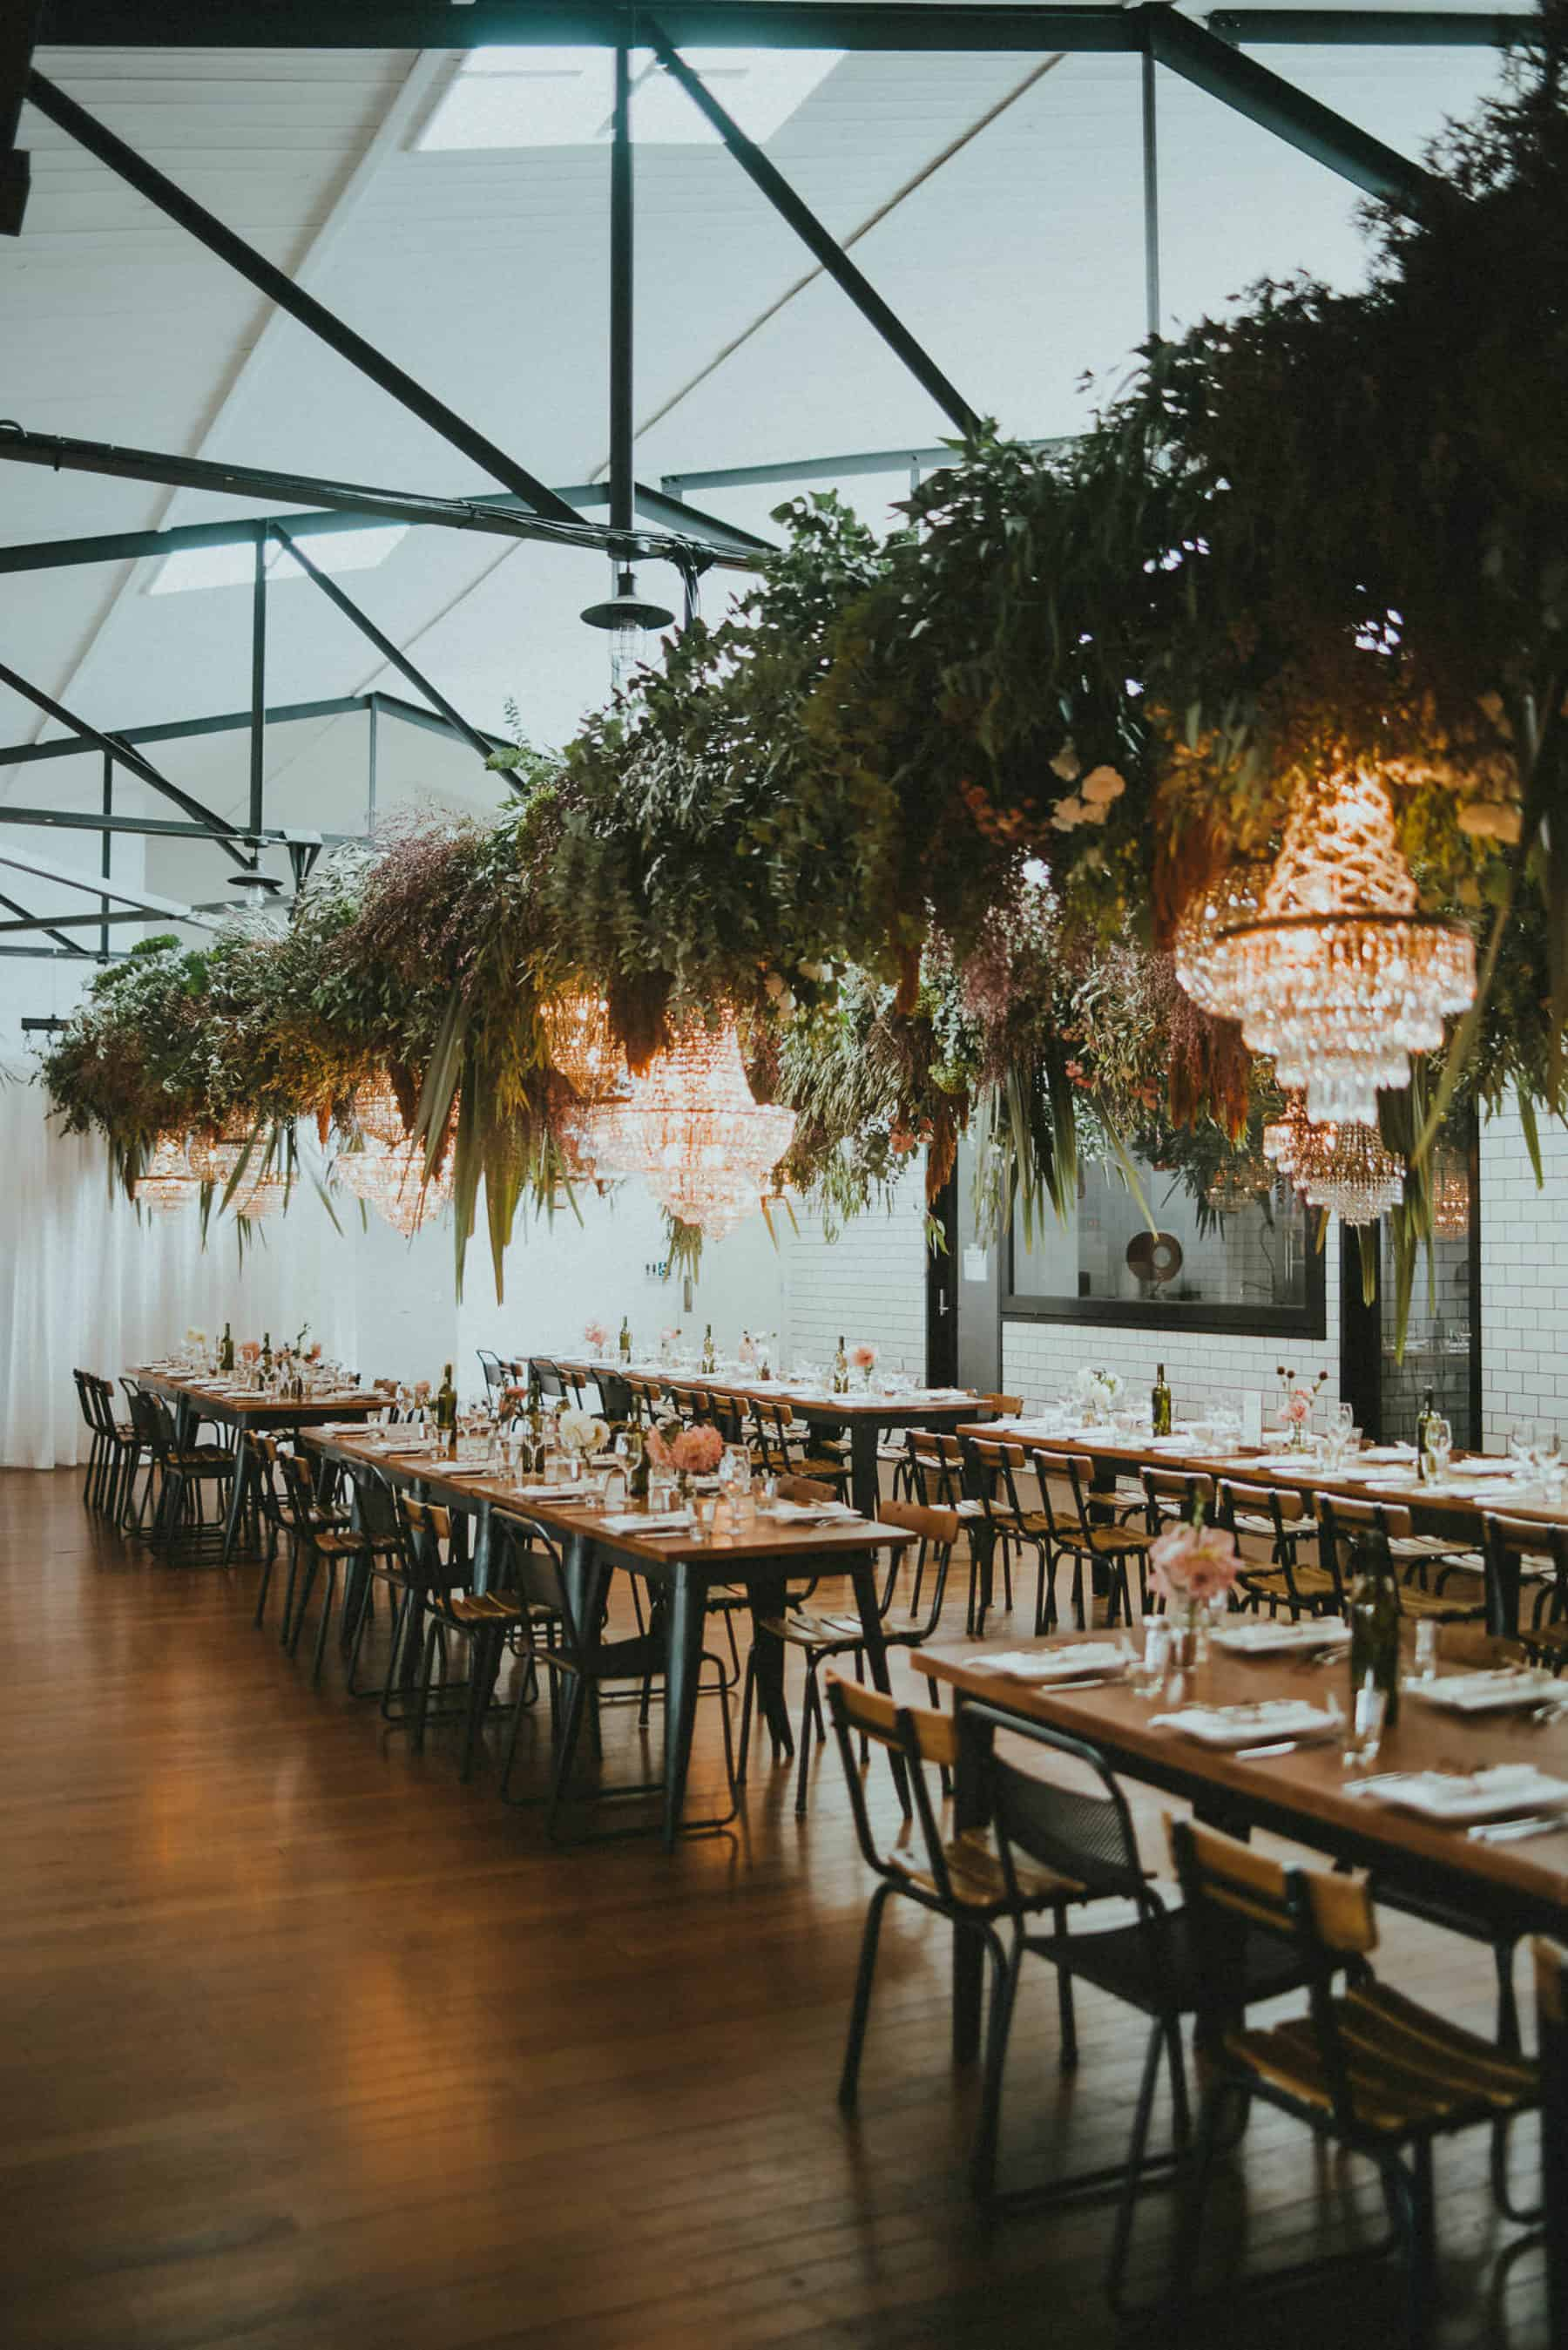 Hanging floral and foliage installations with chandeliers